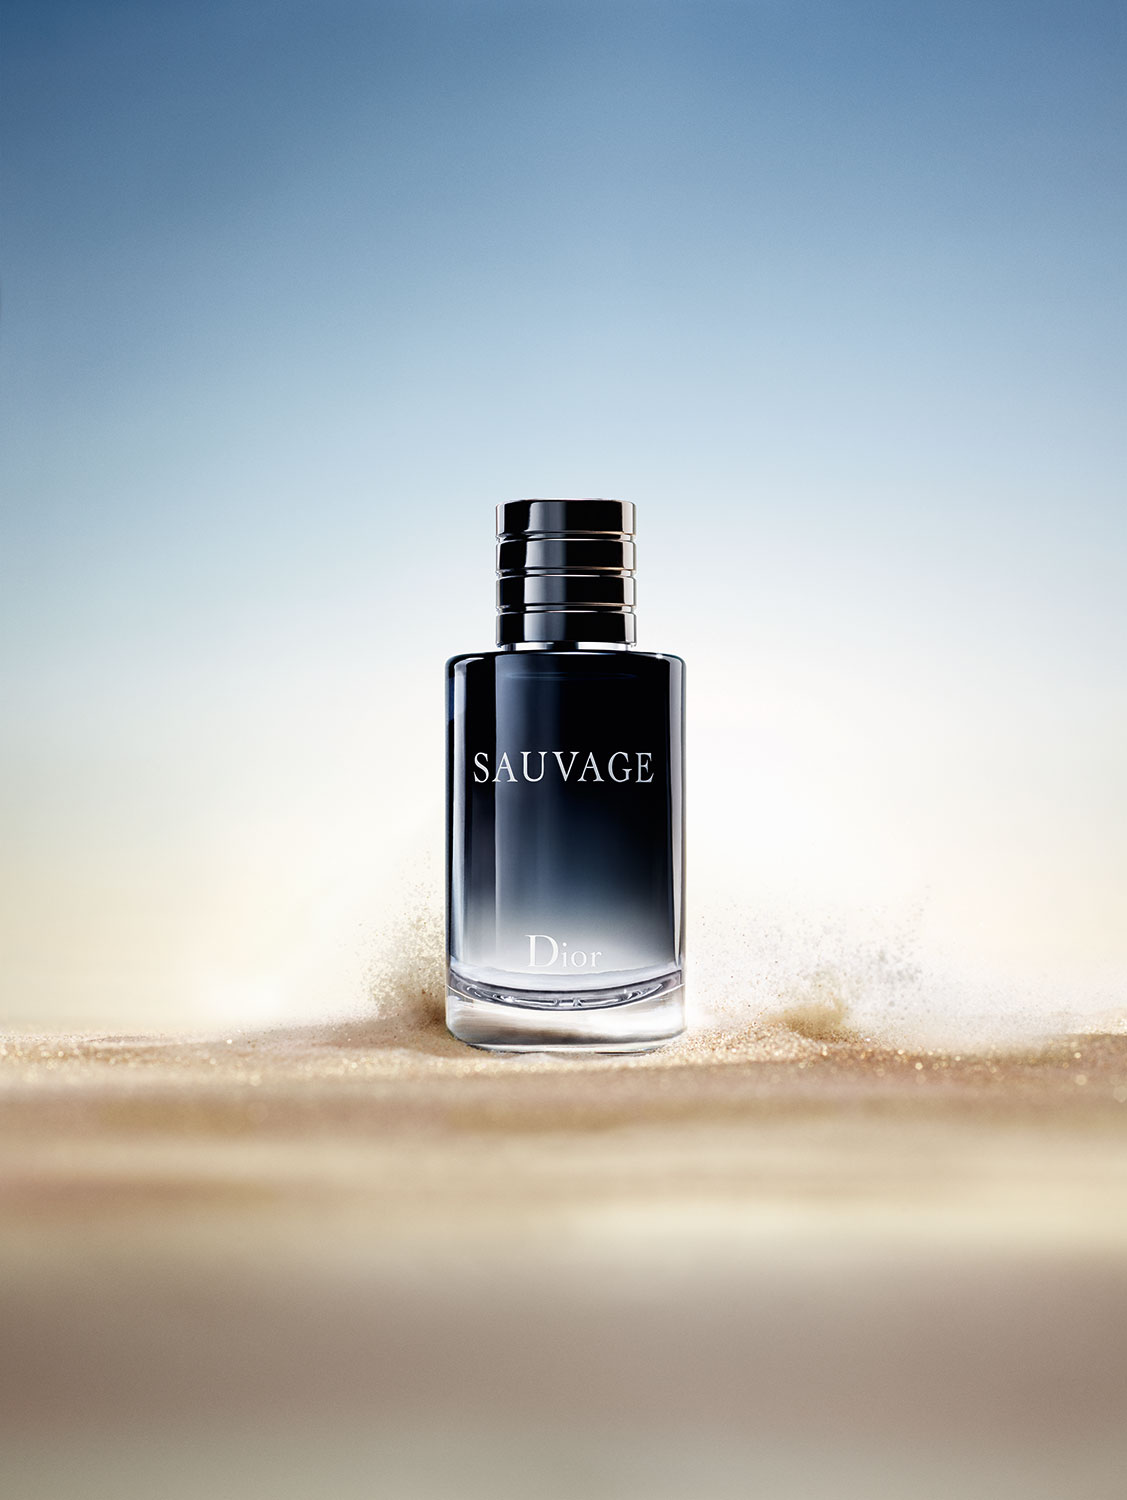 dior-parfum-sauvage-johnny-depp